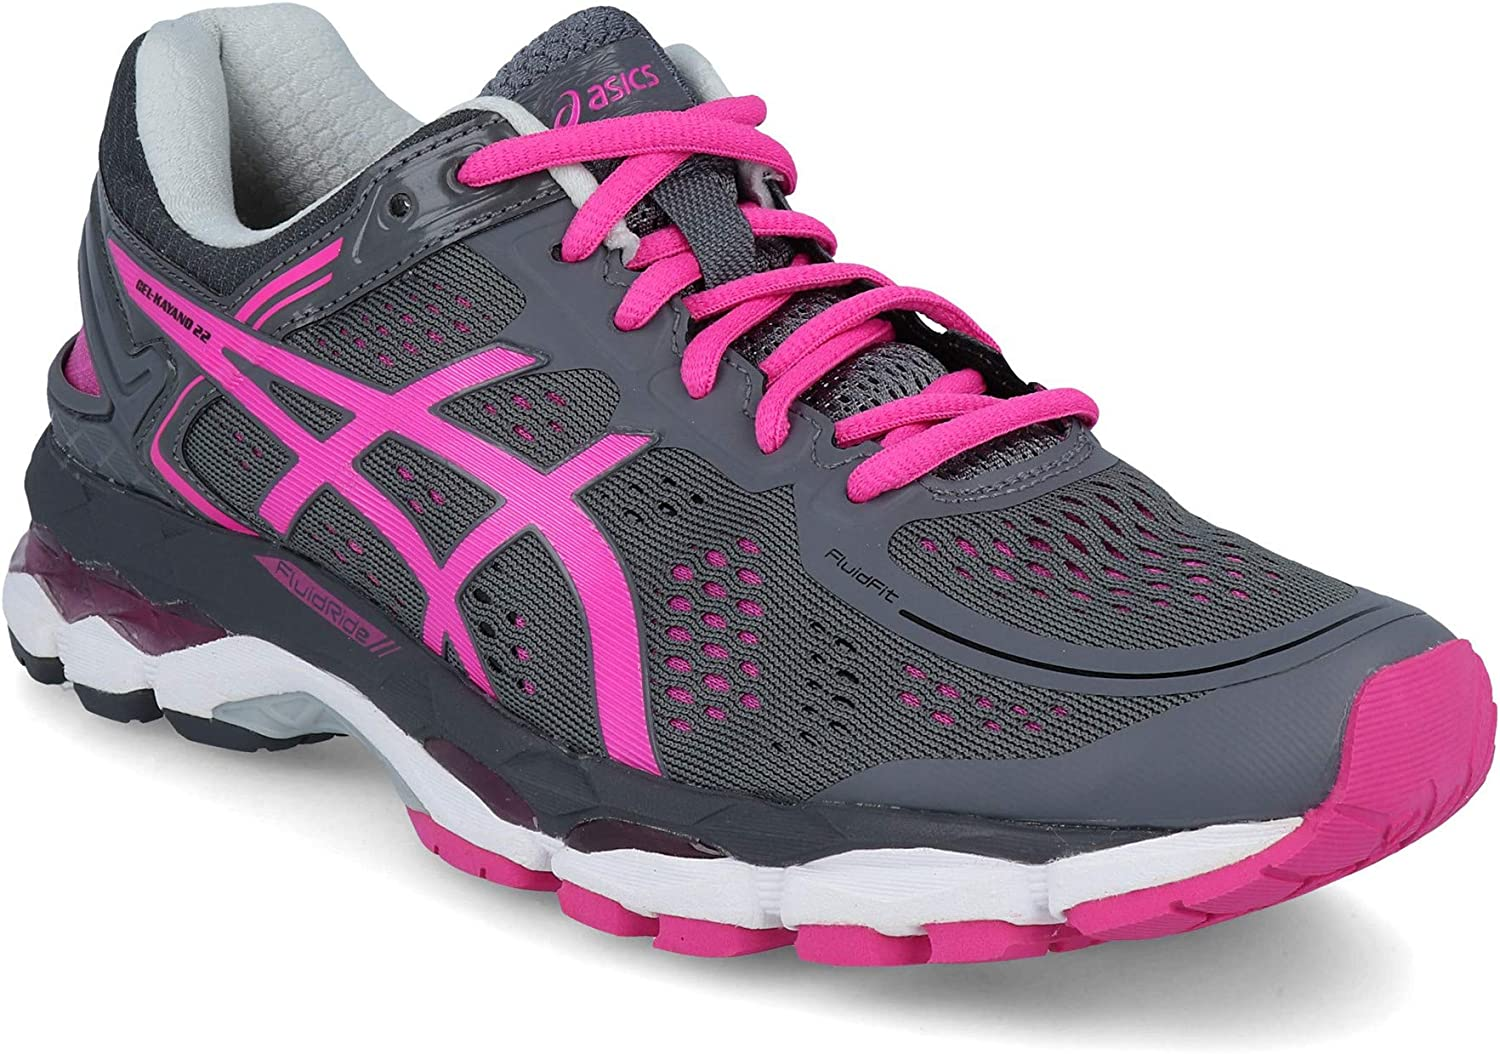 Asics Gel-Kayano 22 Womens Zapatilla para Correr - 43.5: Amazon.es: Zapatos y complementos